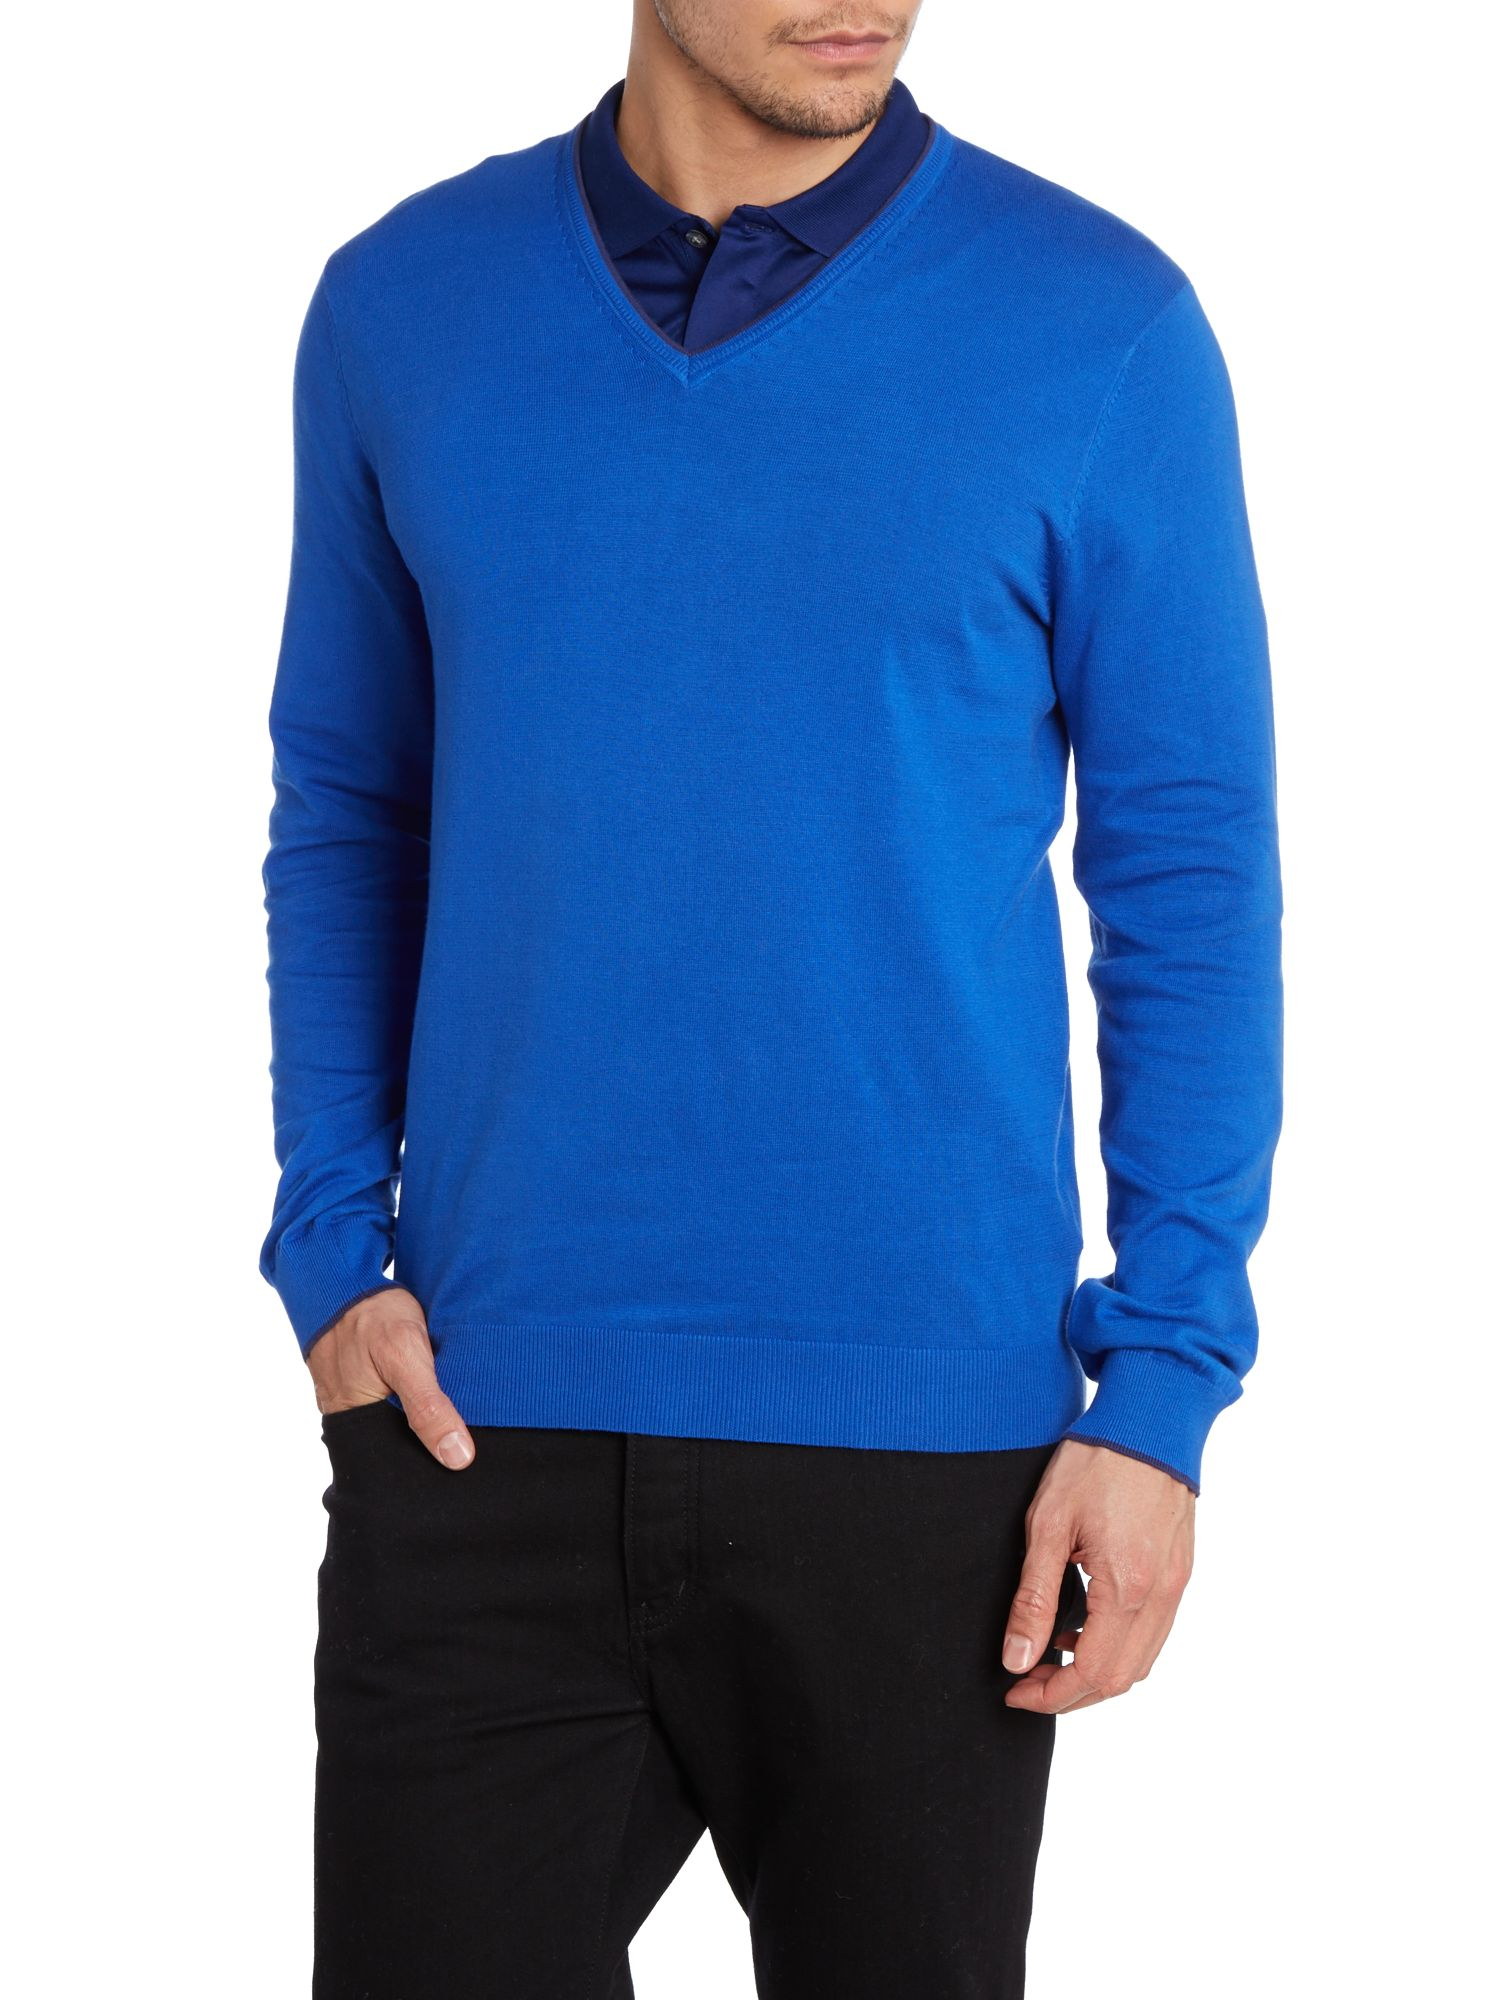 Tipped cotton v neck jumper